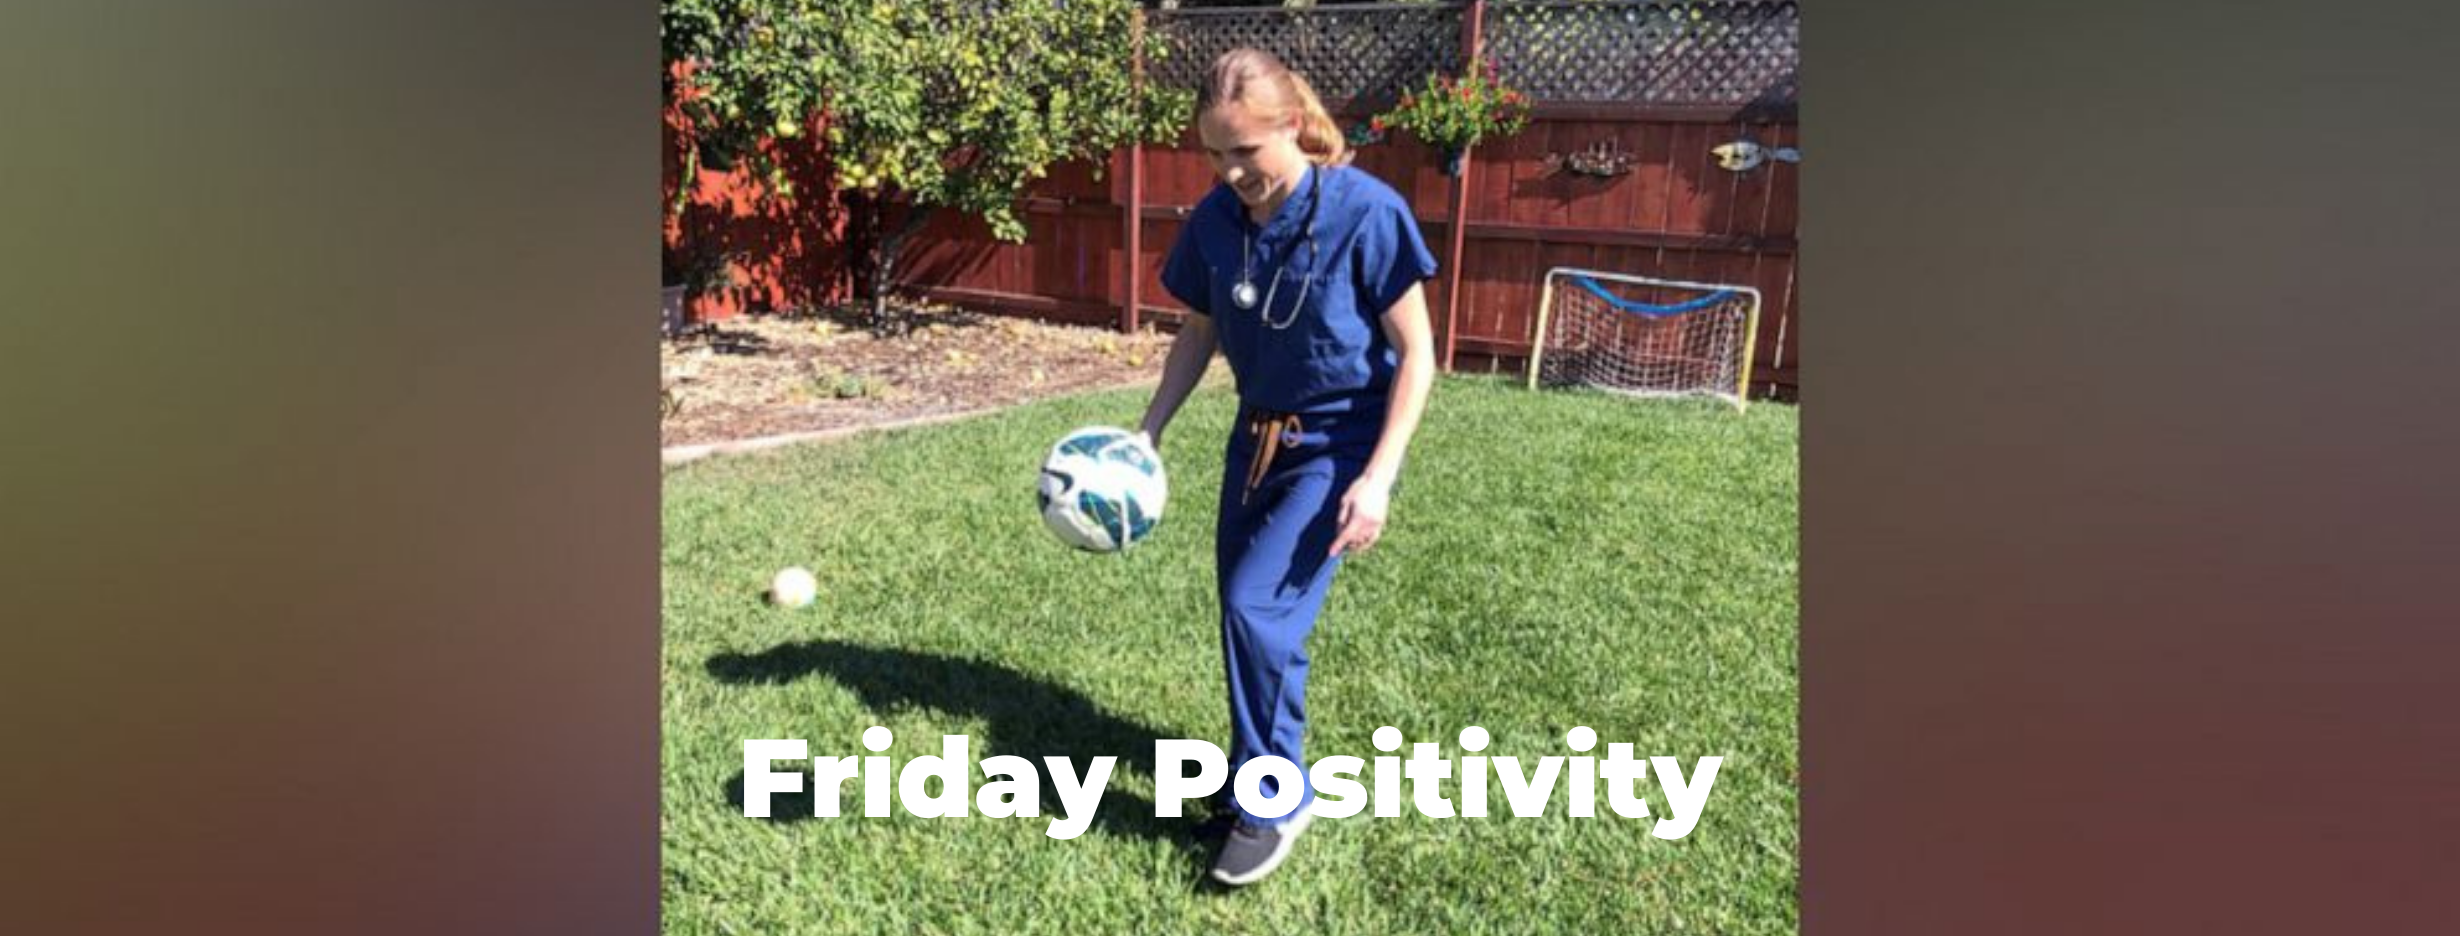 Friday Positivity - Soccer Olympian-Turned-Doctor Helps Treat COVID-19 Patients Thumbnail